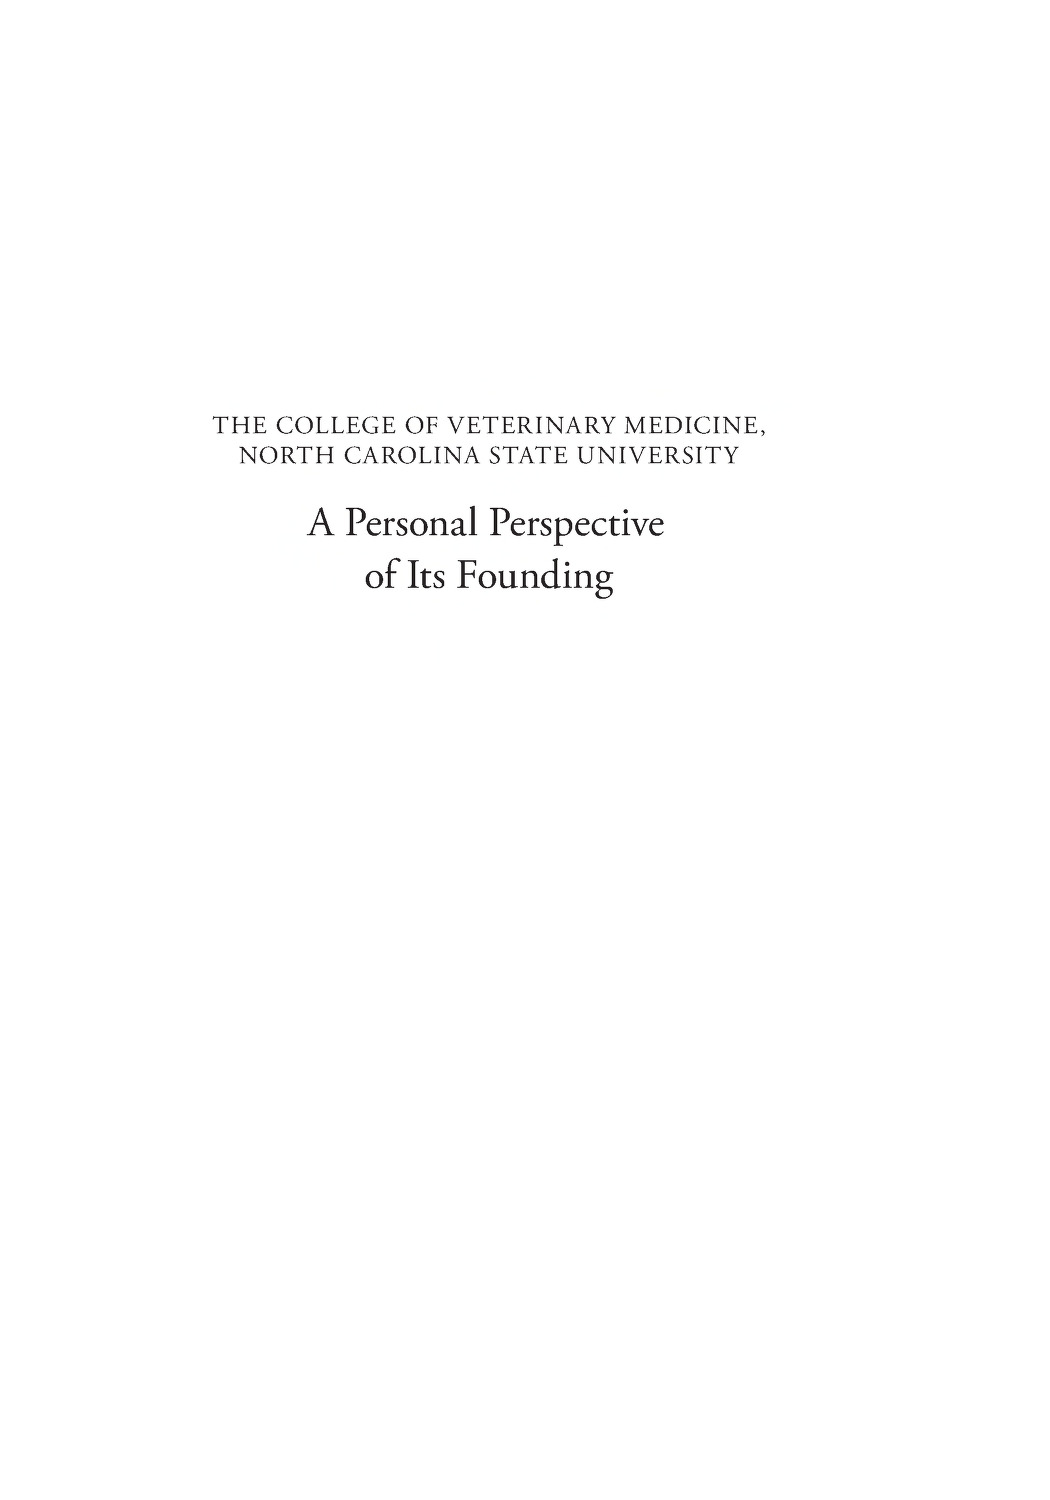 The College of Veterinary Medicine, North Carolina State University: A Personal Perspective of Its Founding